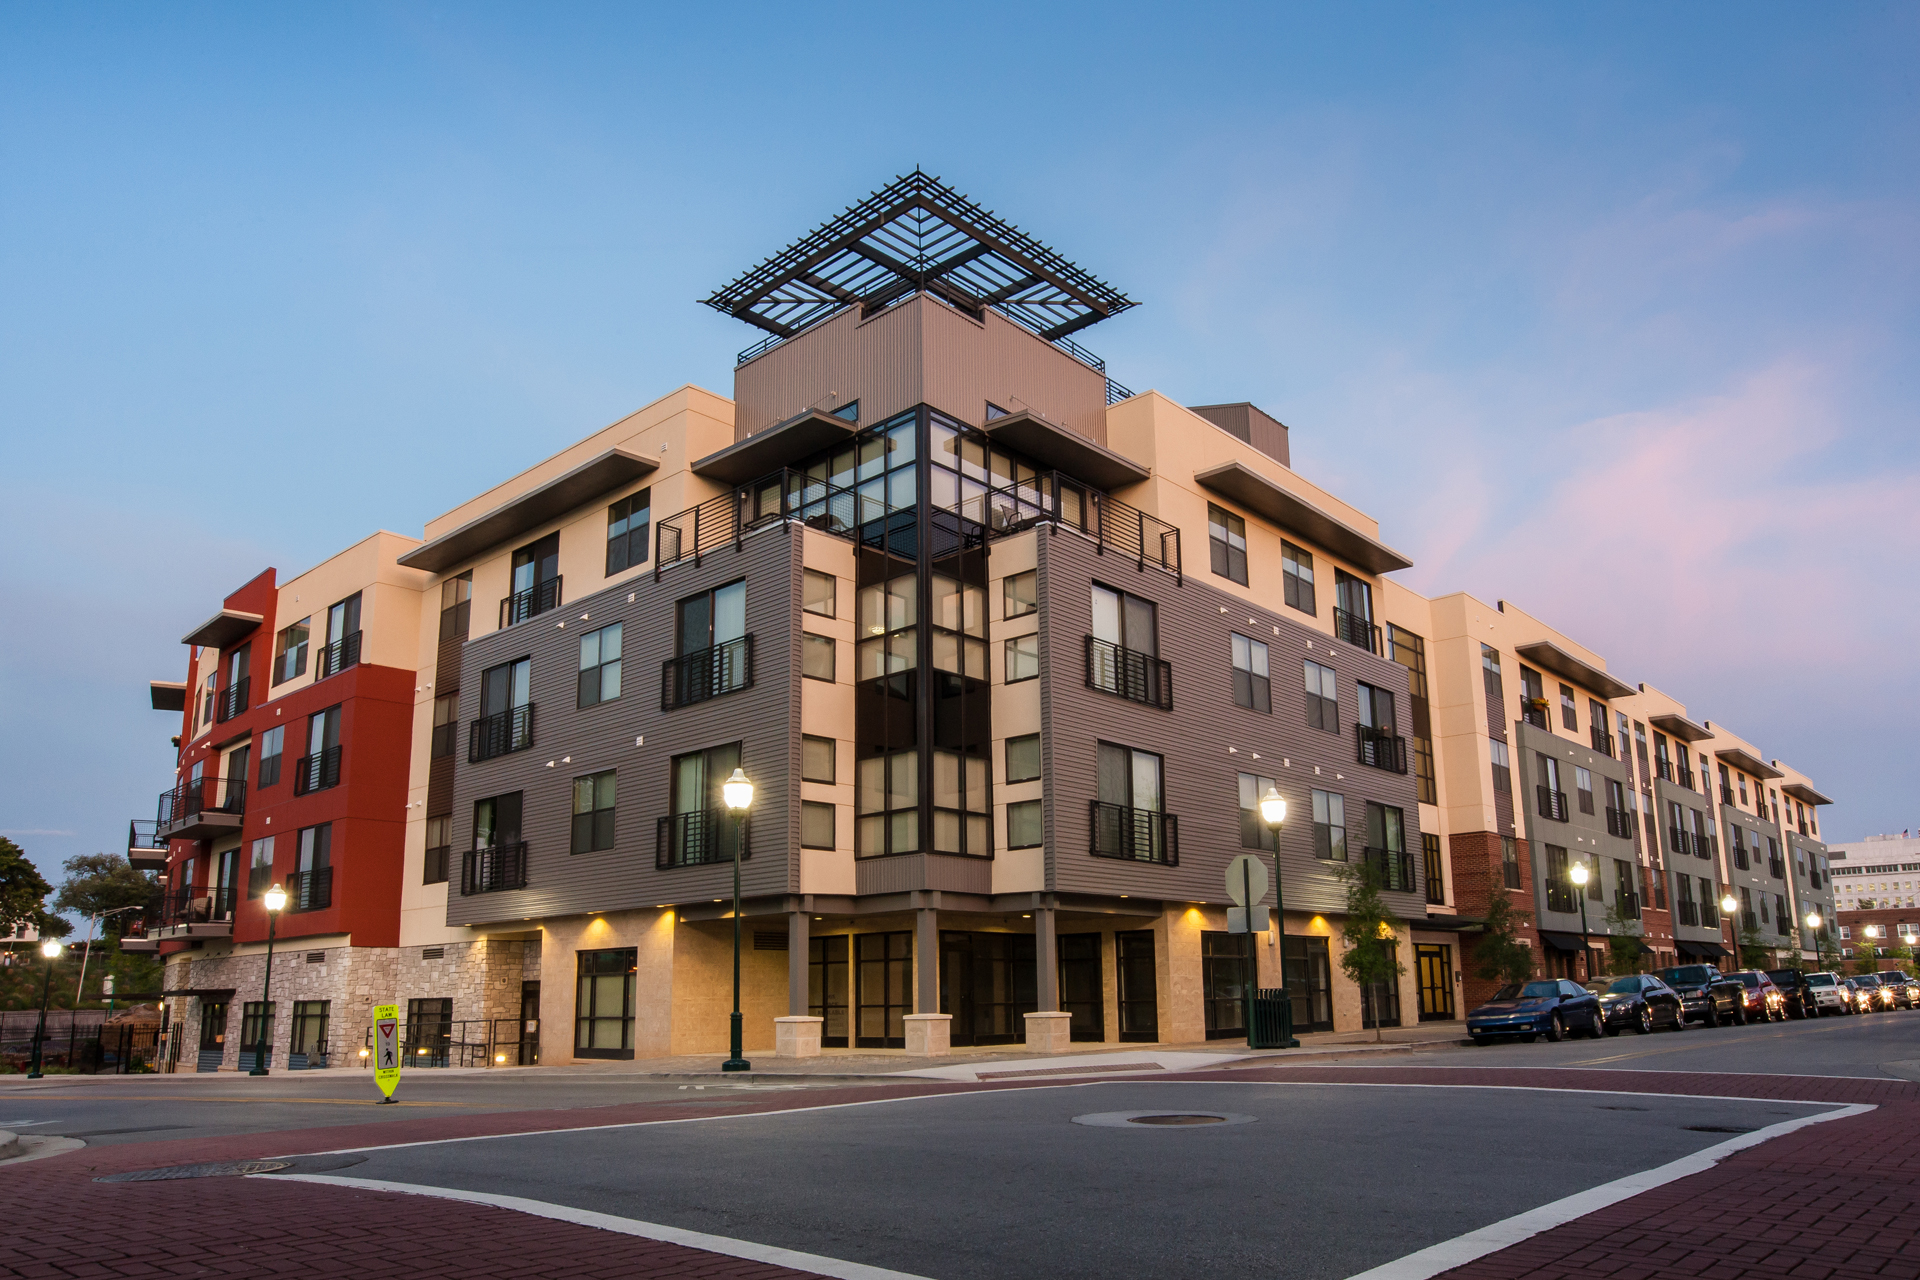 Walnut Commons Architecture